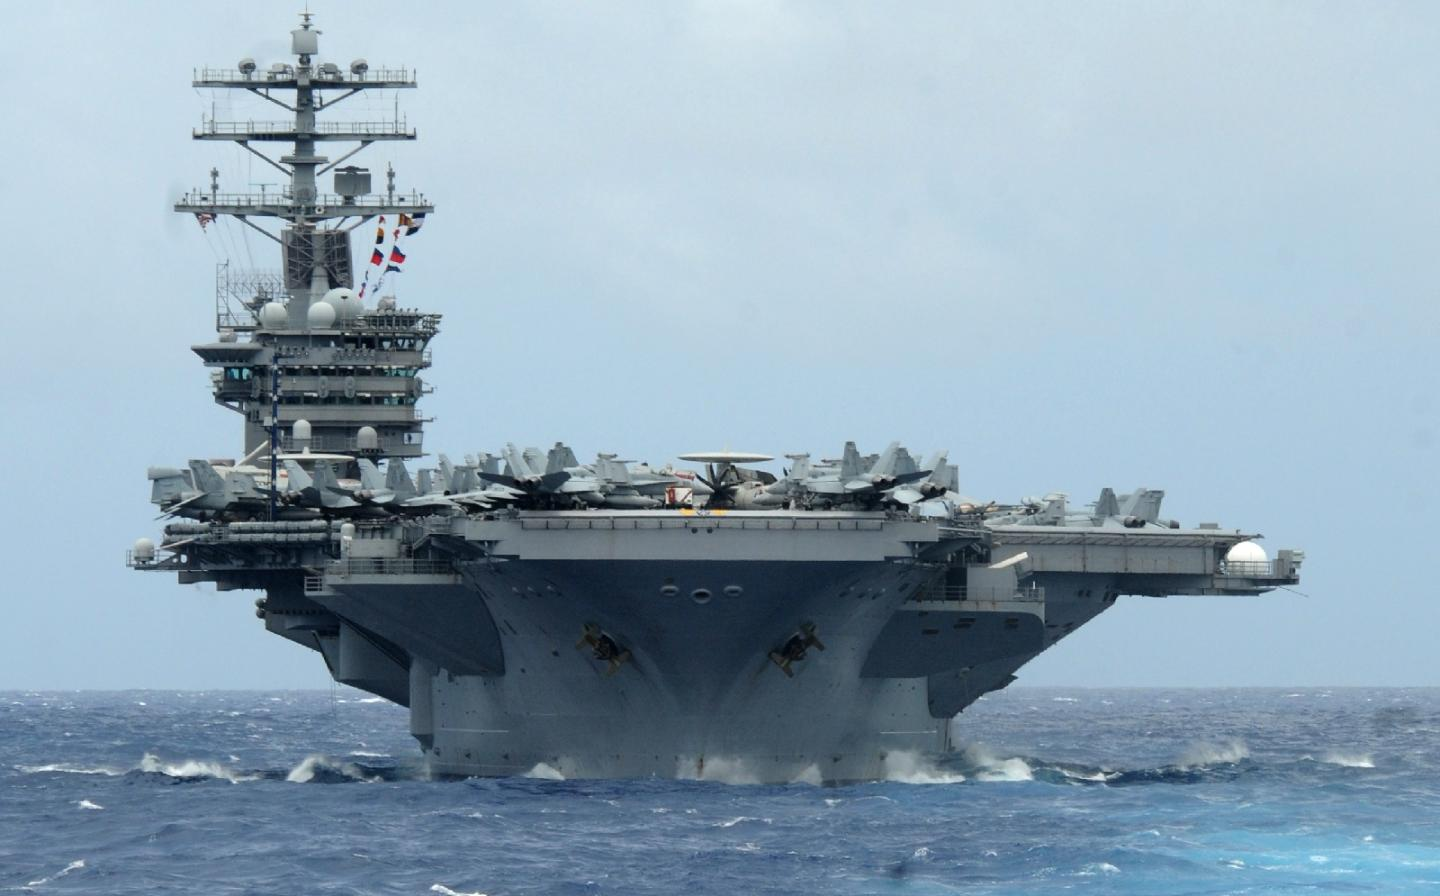 Imagine If Russia and China Built Nuclear-Powered Aircraft Carriers Together